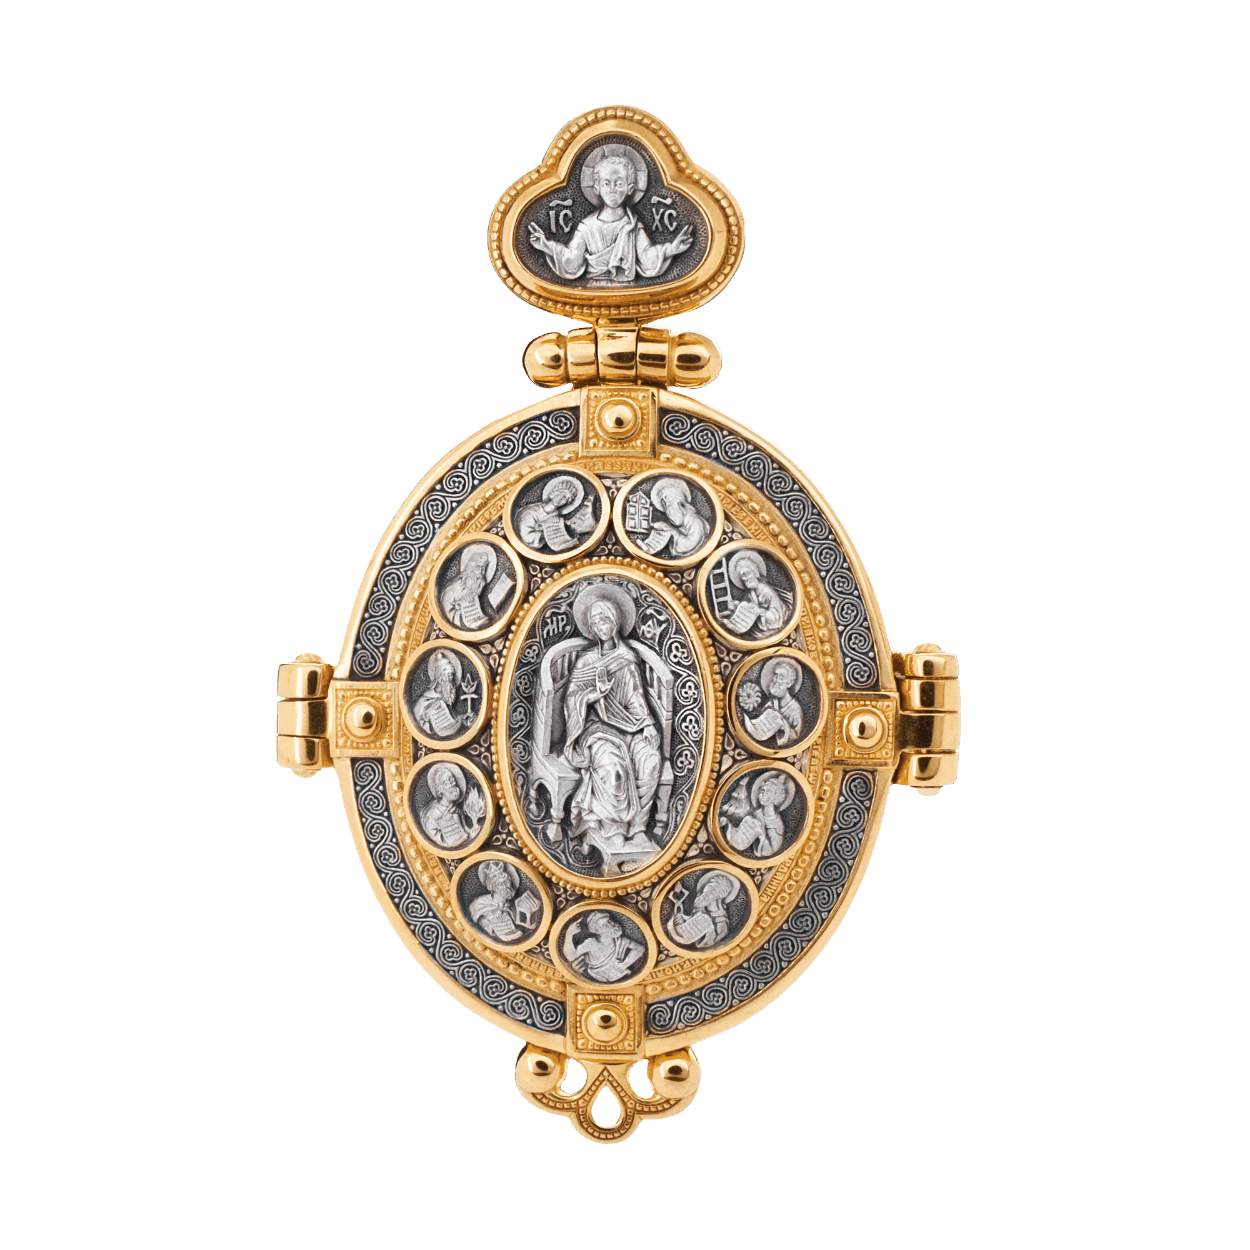 Russian-Orthodox-silver-Foldable-icon-medal-pendant-PRAISE-BE-TO-THE-MOTHER-OF-GOD-THEOTOKOS-Master-Jeweler-Fedorov